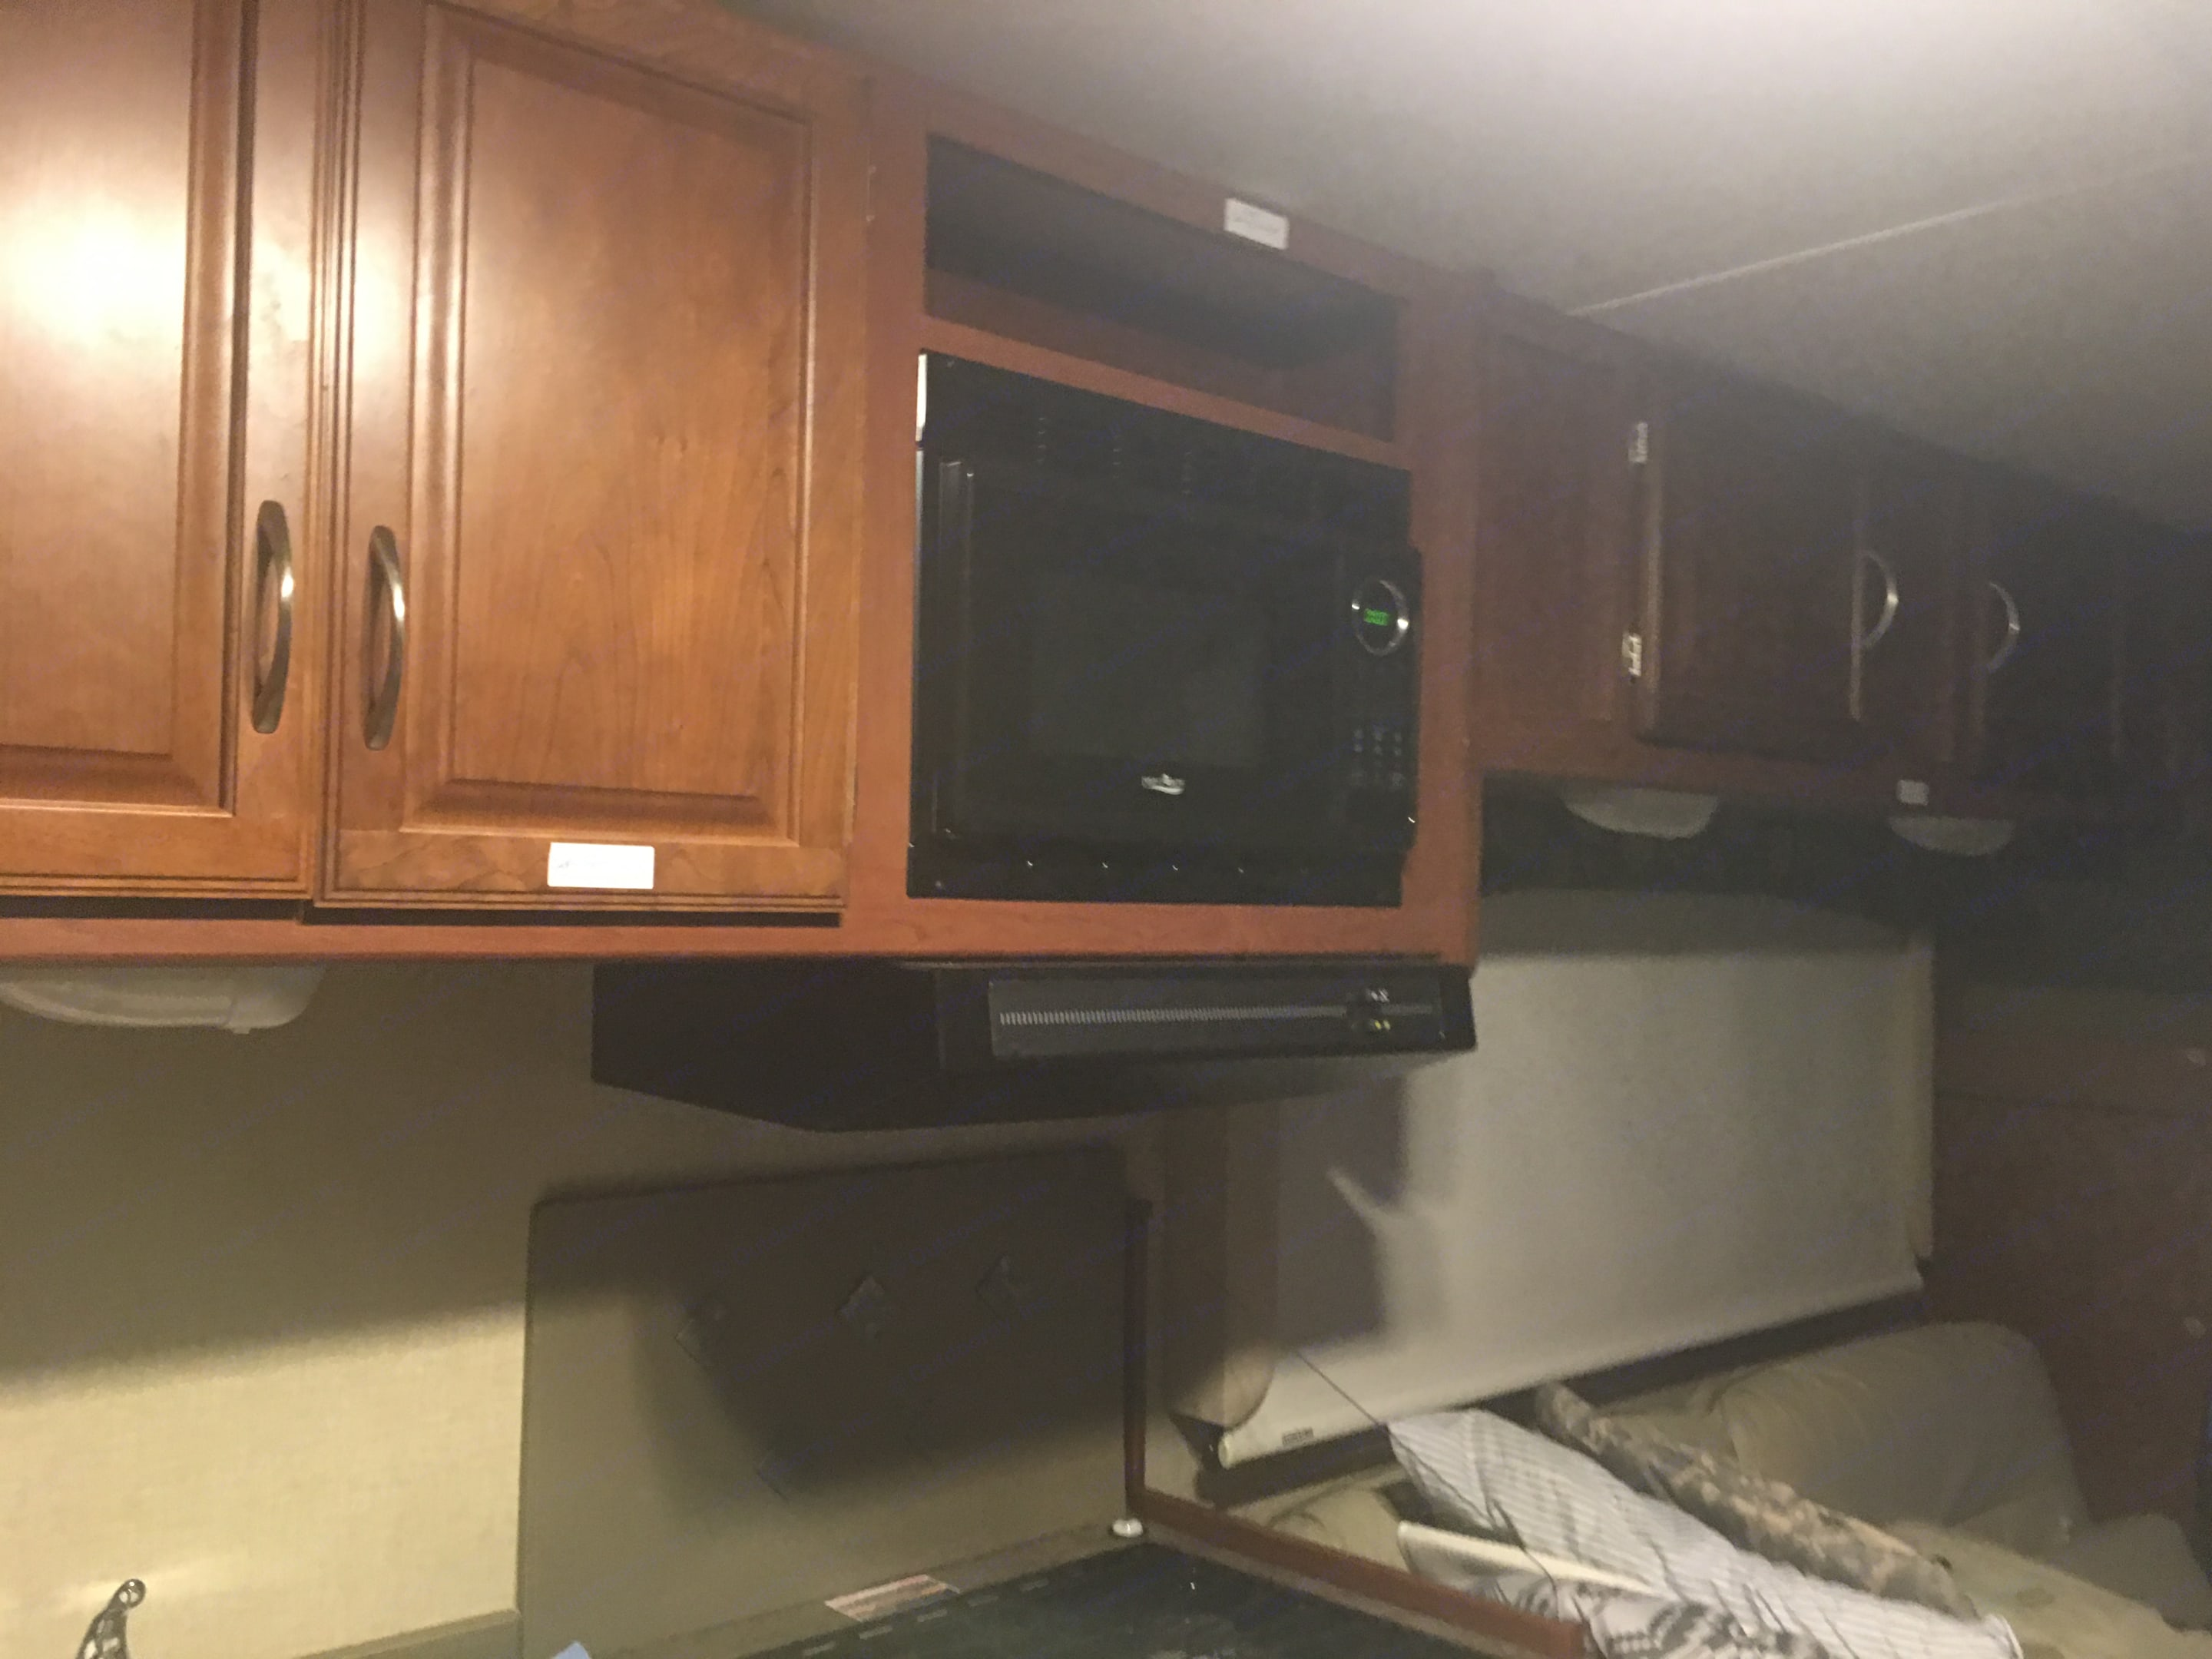 Fully functional microwave, TV and entertainment syste, . Winnebago Minnie Winnie 2016